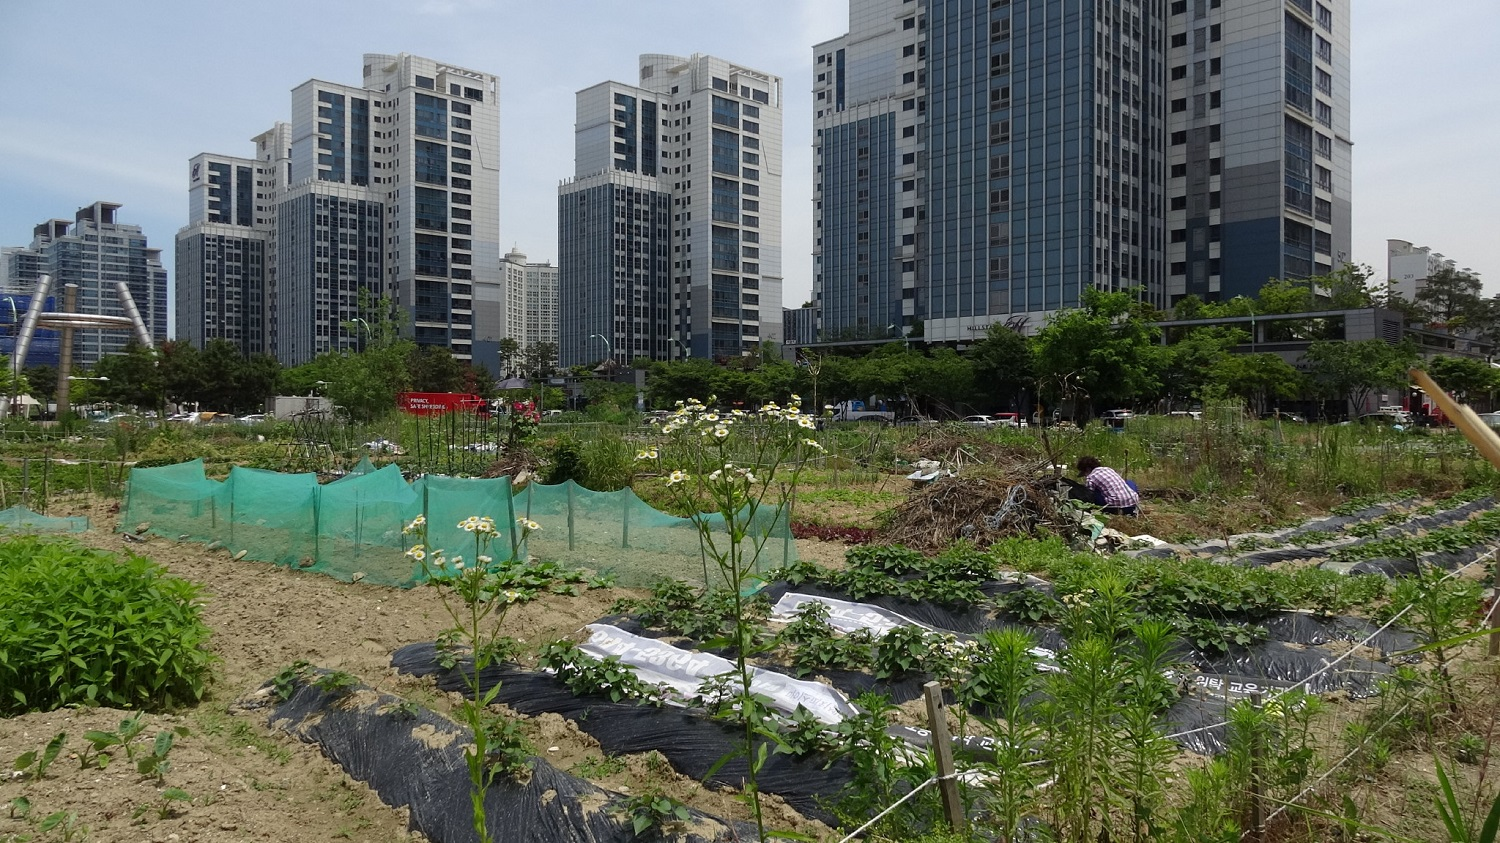 By invitation only: Songdo's smart city promise for the selected few